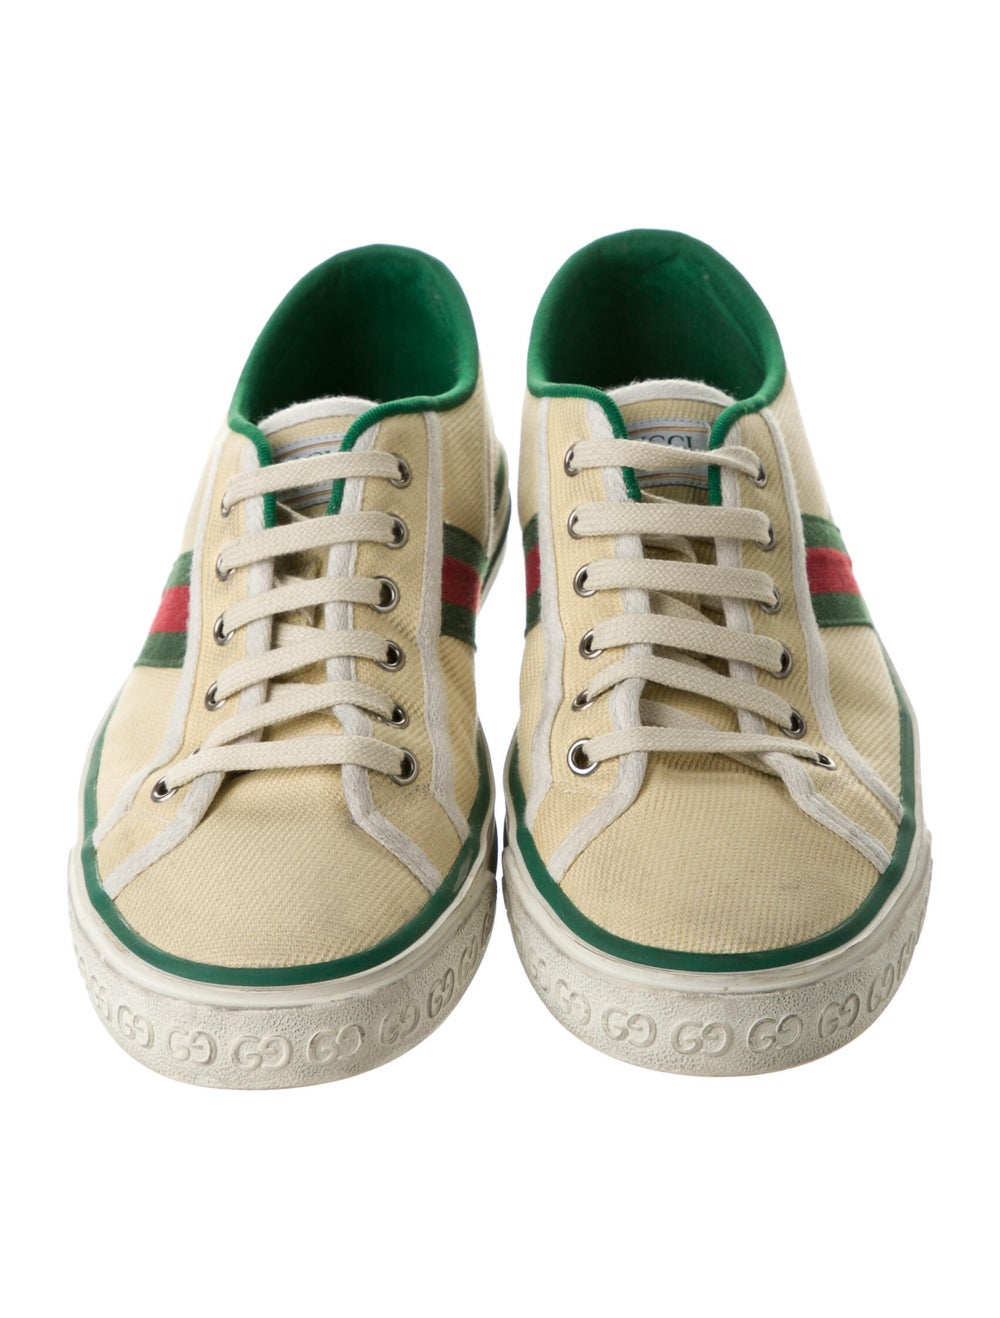 Gucci 1977 Tennis Sneakers - image 3